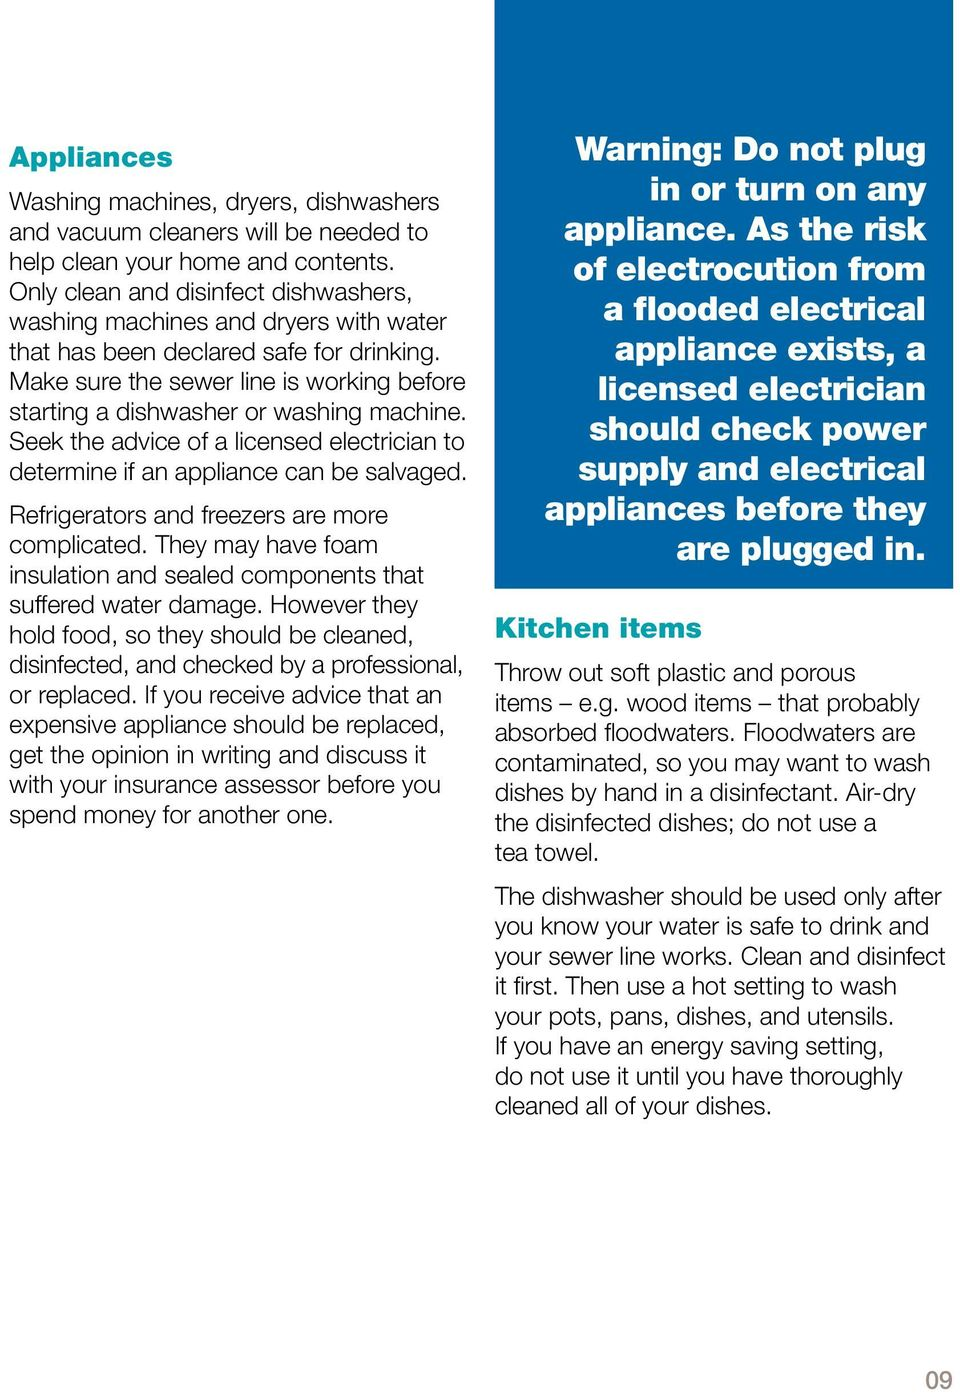 Make sure the sewer line is working before starting a dishwasher or washing machine. Seek the advice of a licensed electrician to determine if an appliance can be salvaged.